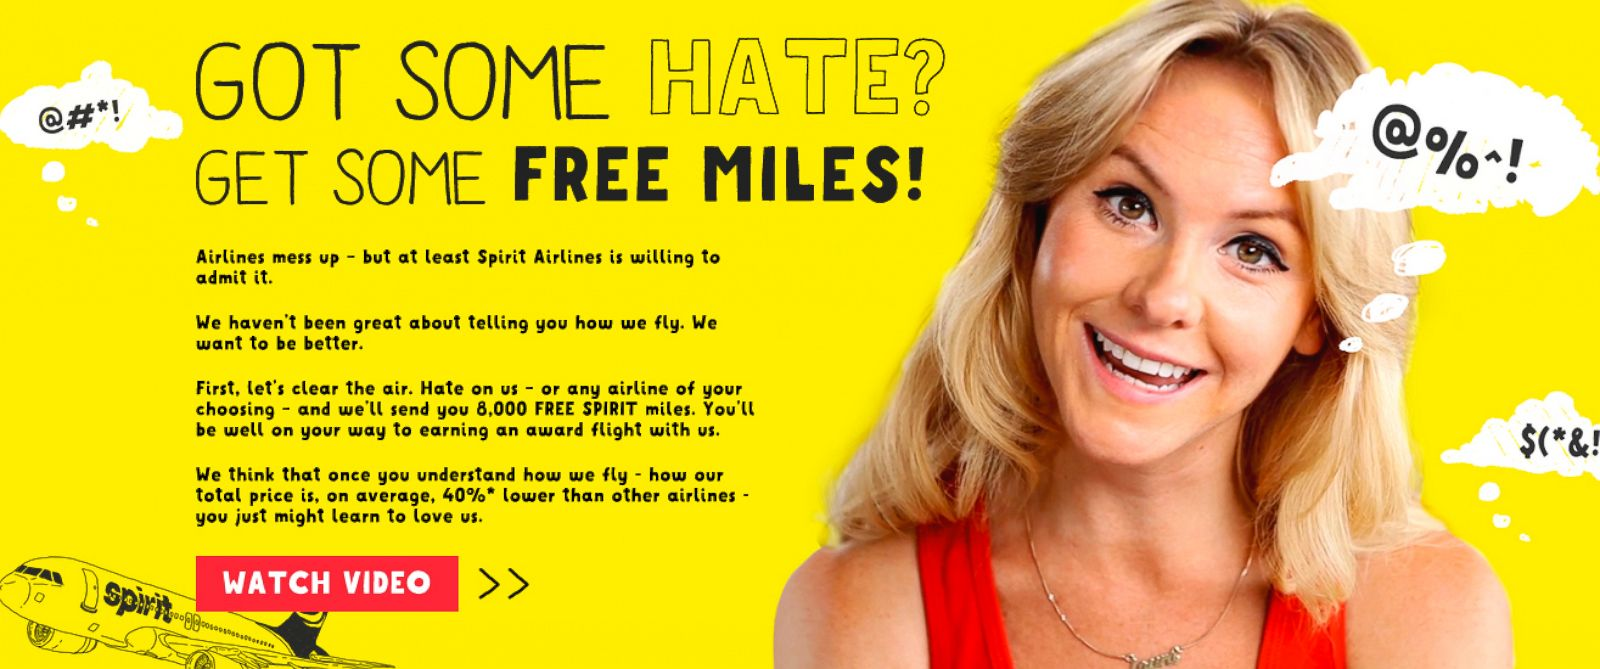 PHOTO: Spirit Airlines will give you free airline miles for angry vents.